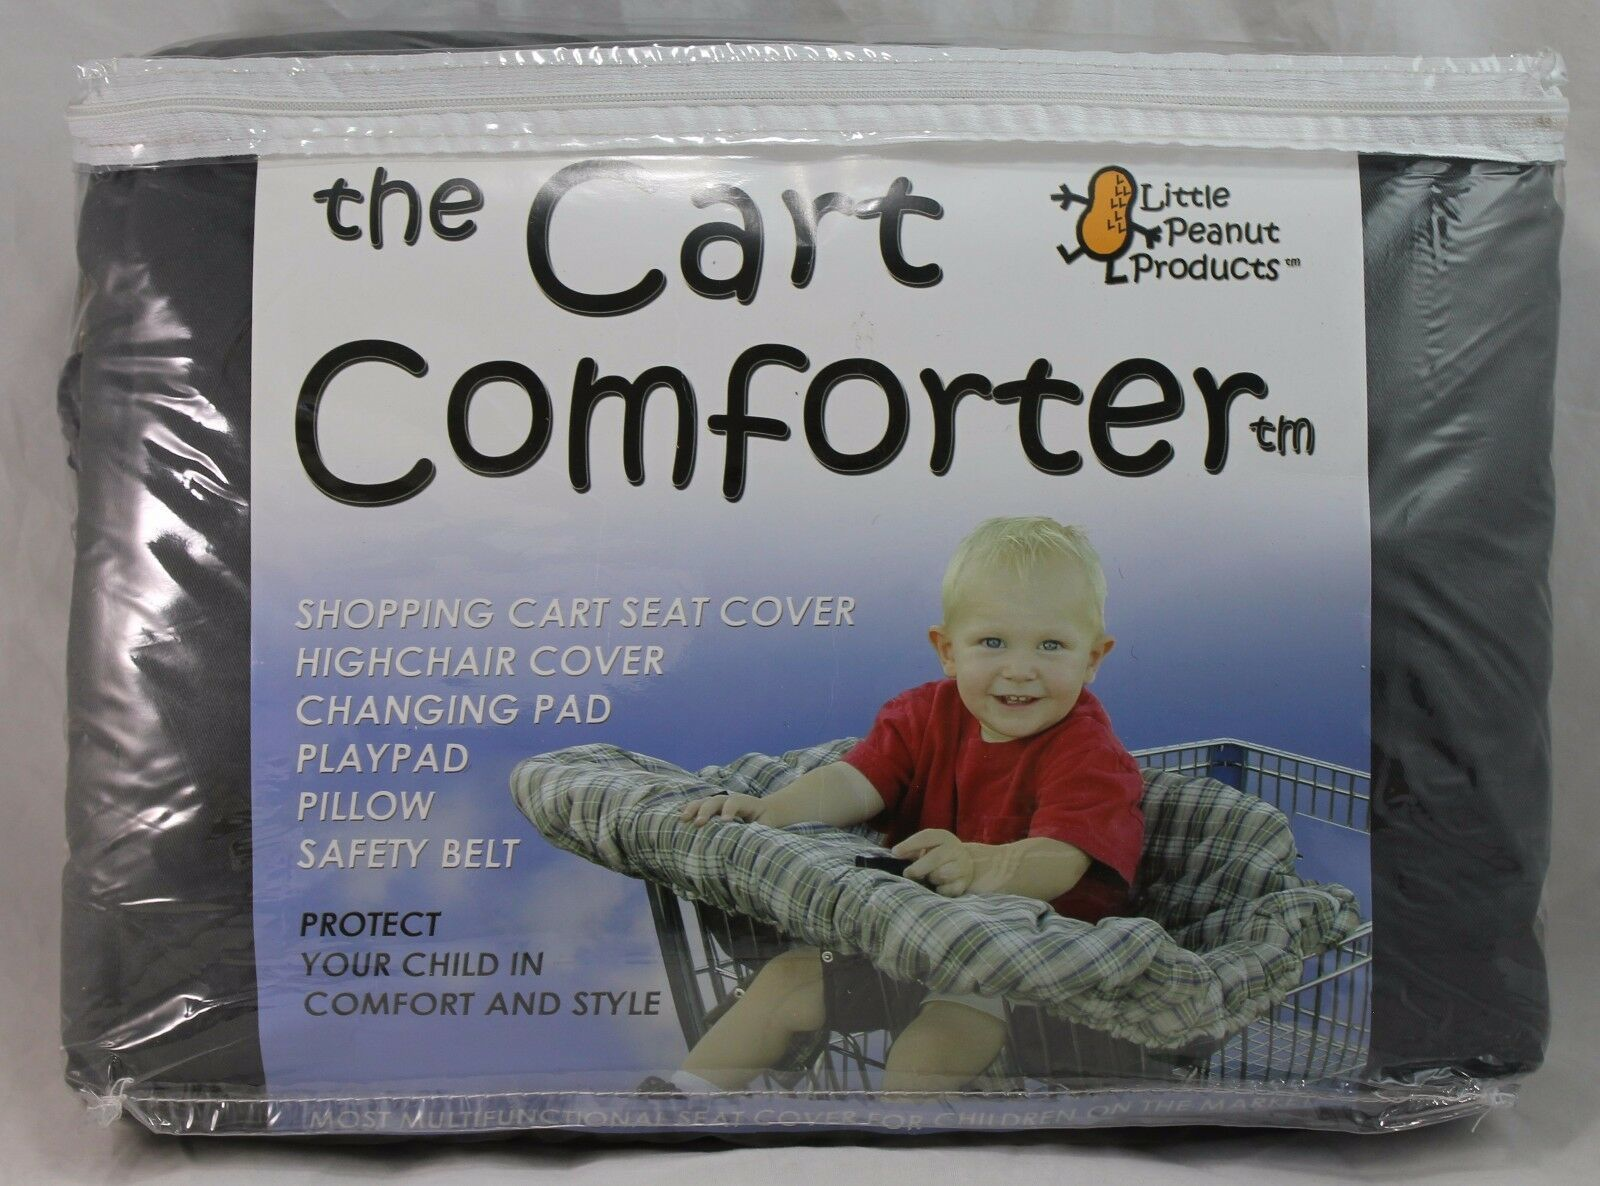 "Primary image for The Cart Comforter, Shopping Cart Cover, Little Peanut Products, 41""x45"", Brown"